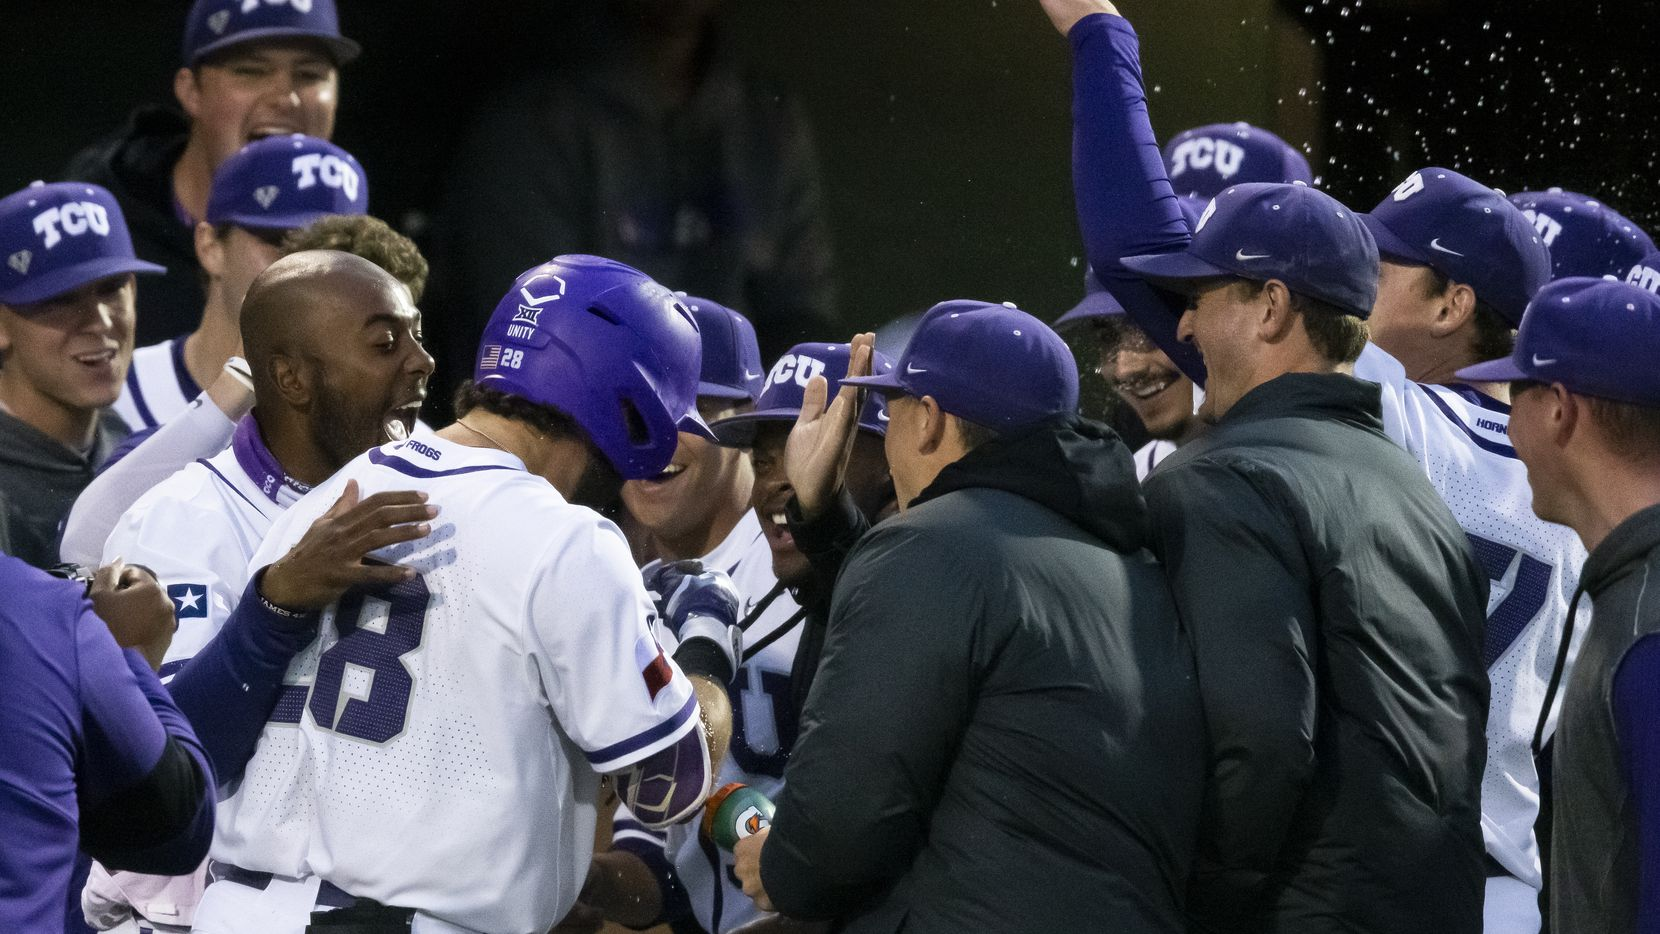 TCU Gray Rodgers (28) is congratulated by teammates after hitting a two-run home run during the second inning of an NCAA baseball game against Oklahoma St. on Friday, April 16, 2021, in Fort Worth, Texas.